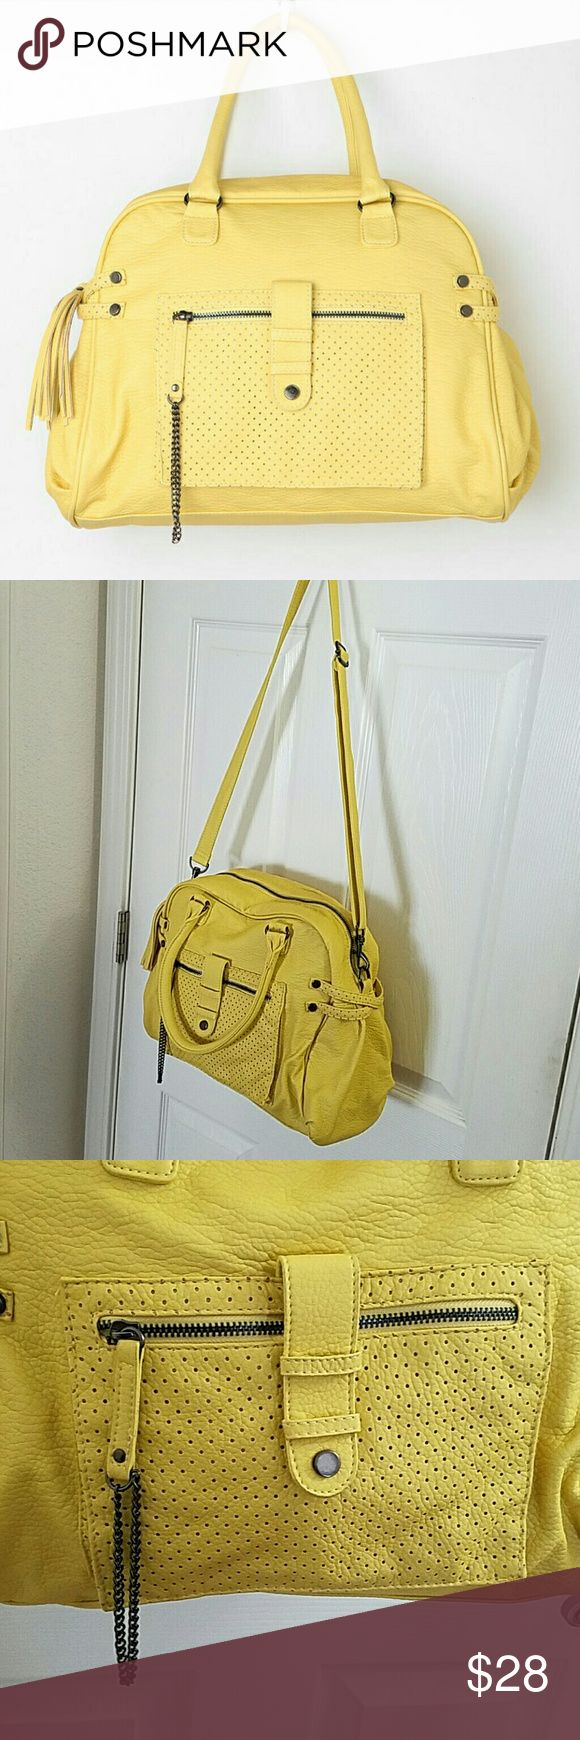 Deena & Ozzy yellow purse/bag Deena & Ozzy yellow bag/purse. Lots of metal embellishments and texture fir a rock style appeal. Adjustable and detachable shoulder strap. Great condition. Clean Deena & Ozzy Bags